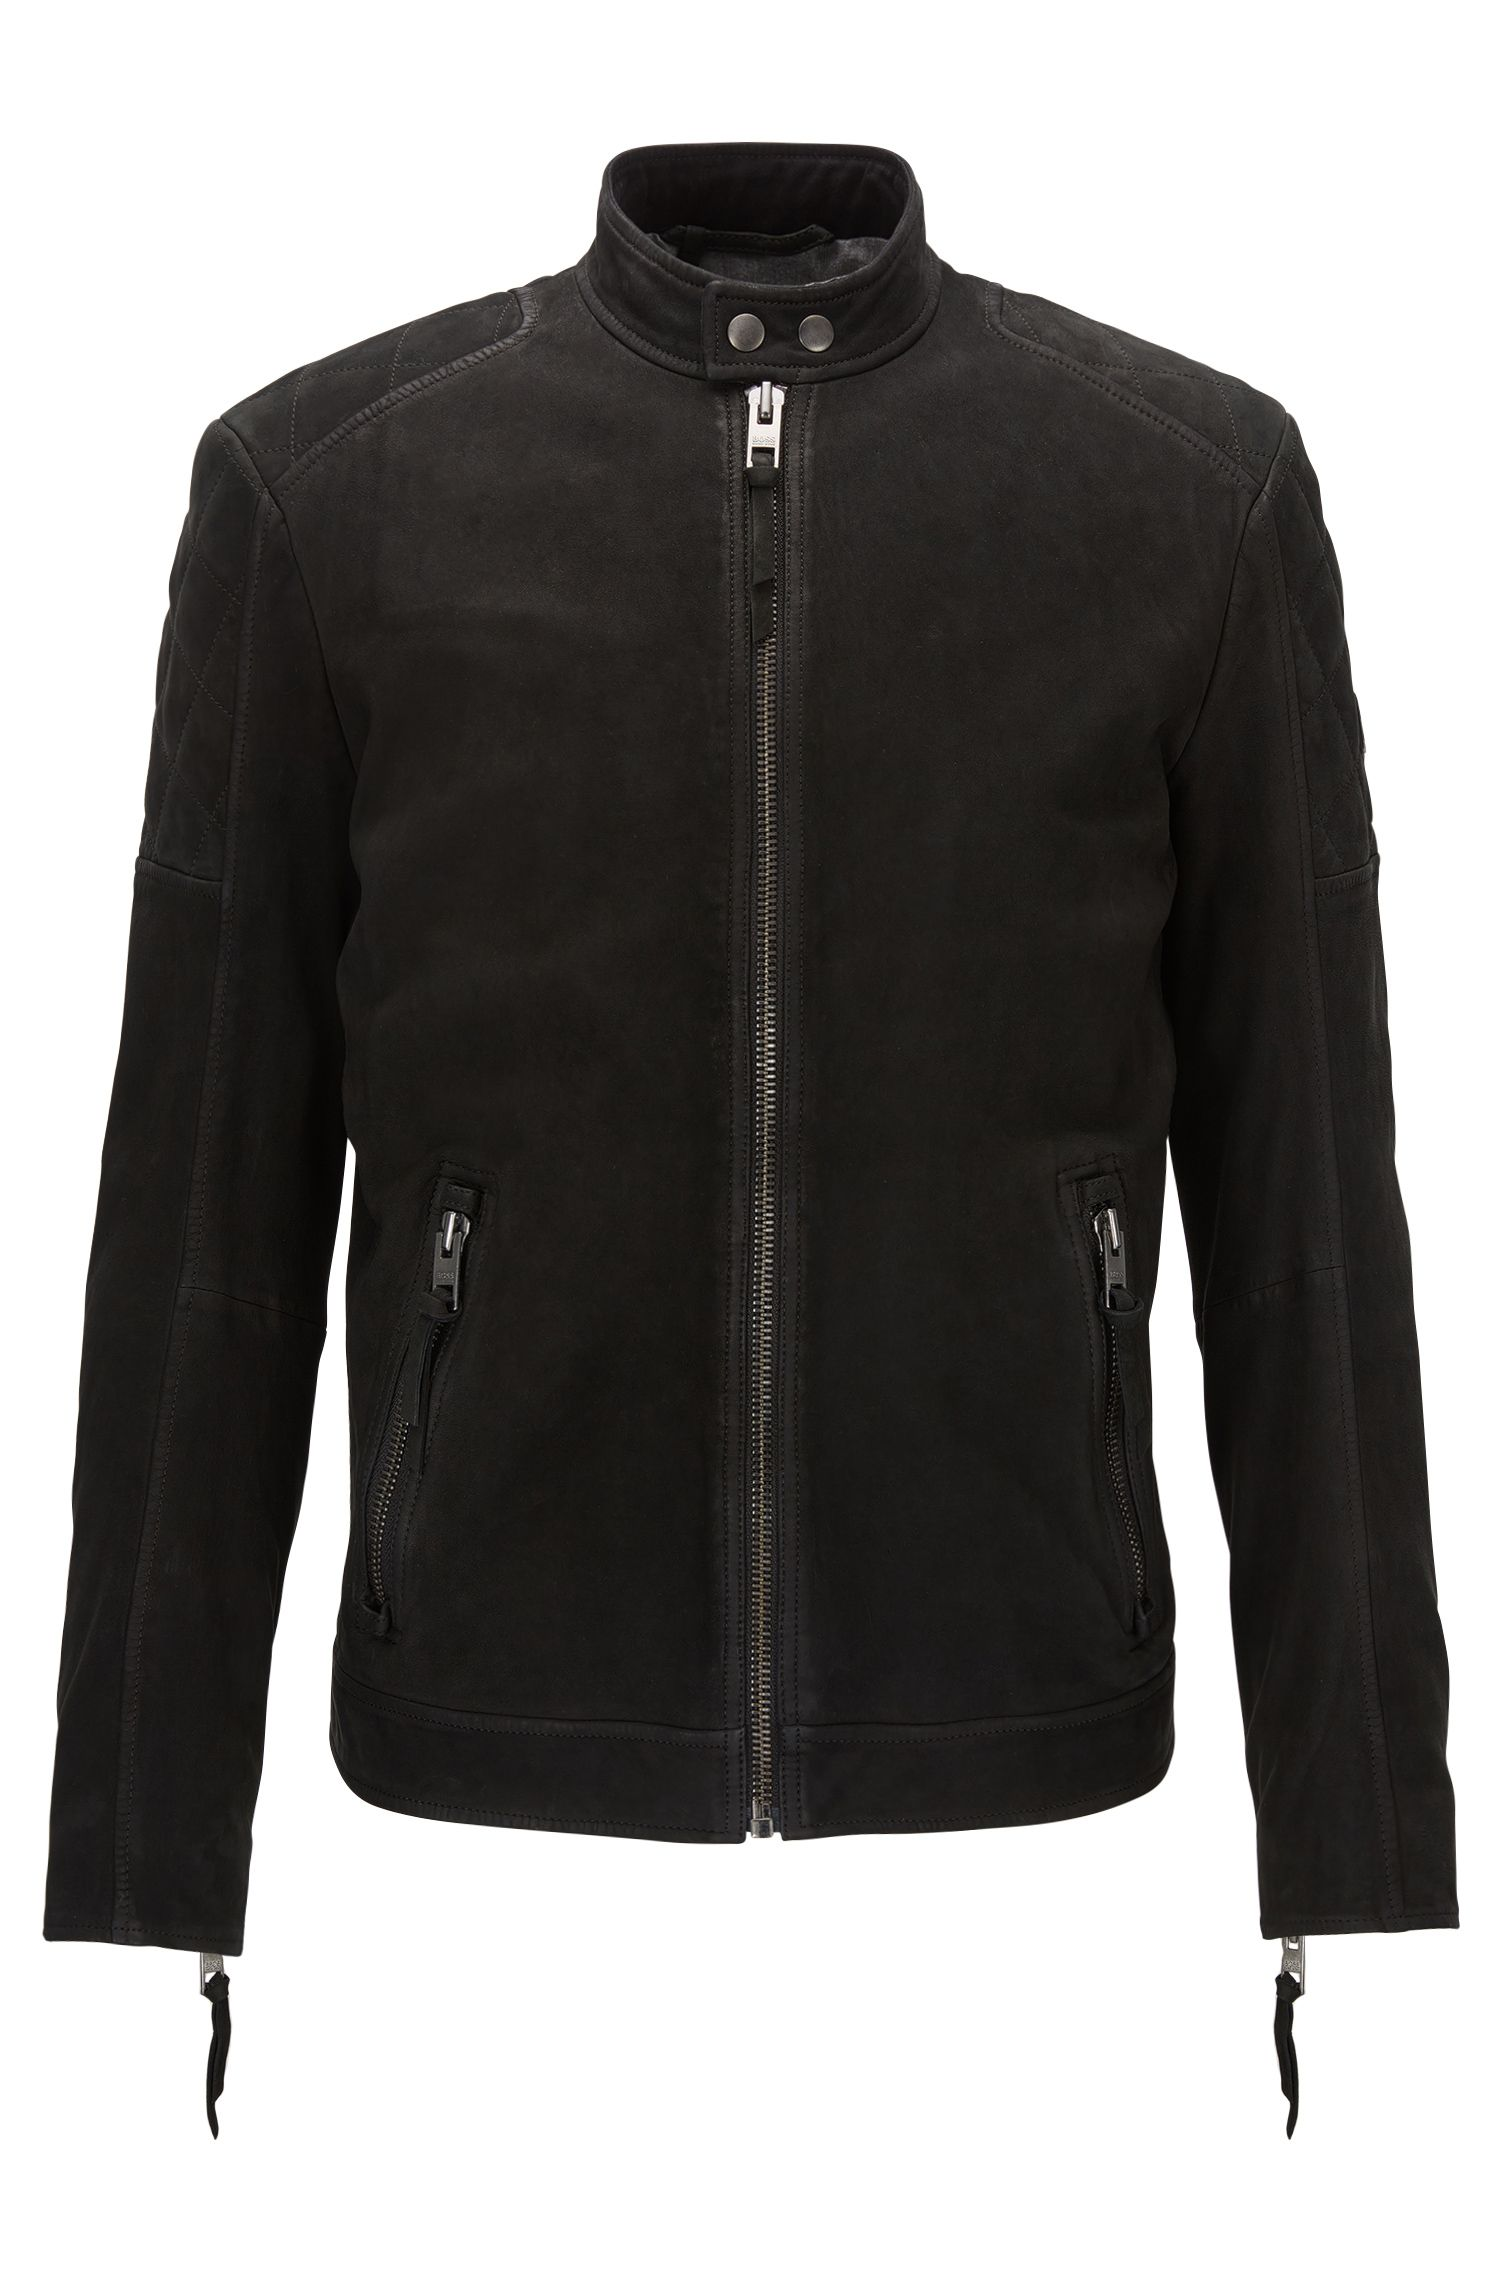 Suede Leather Jacket | Jeepo